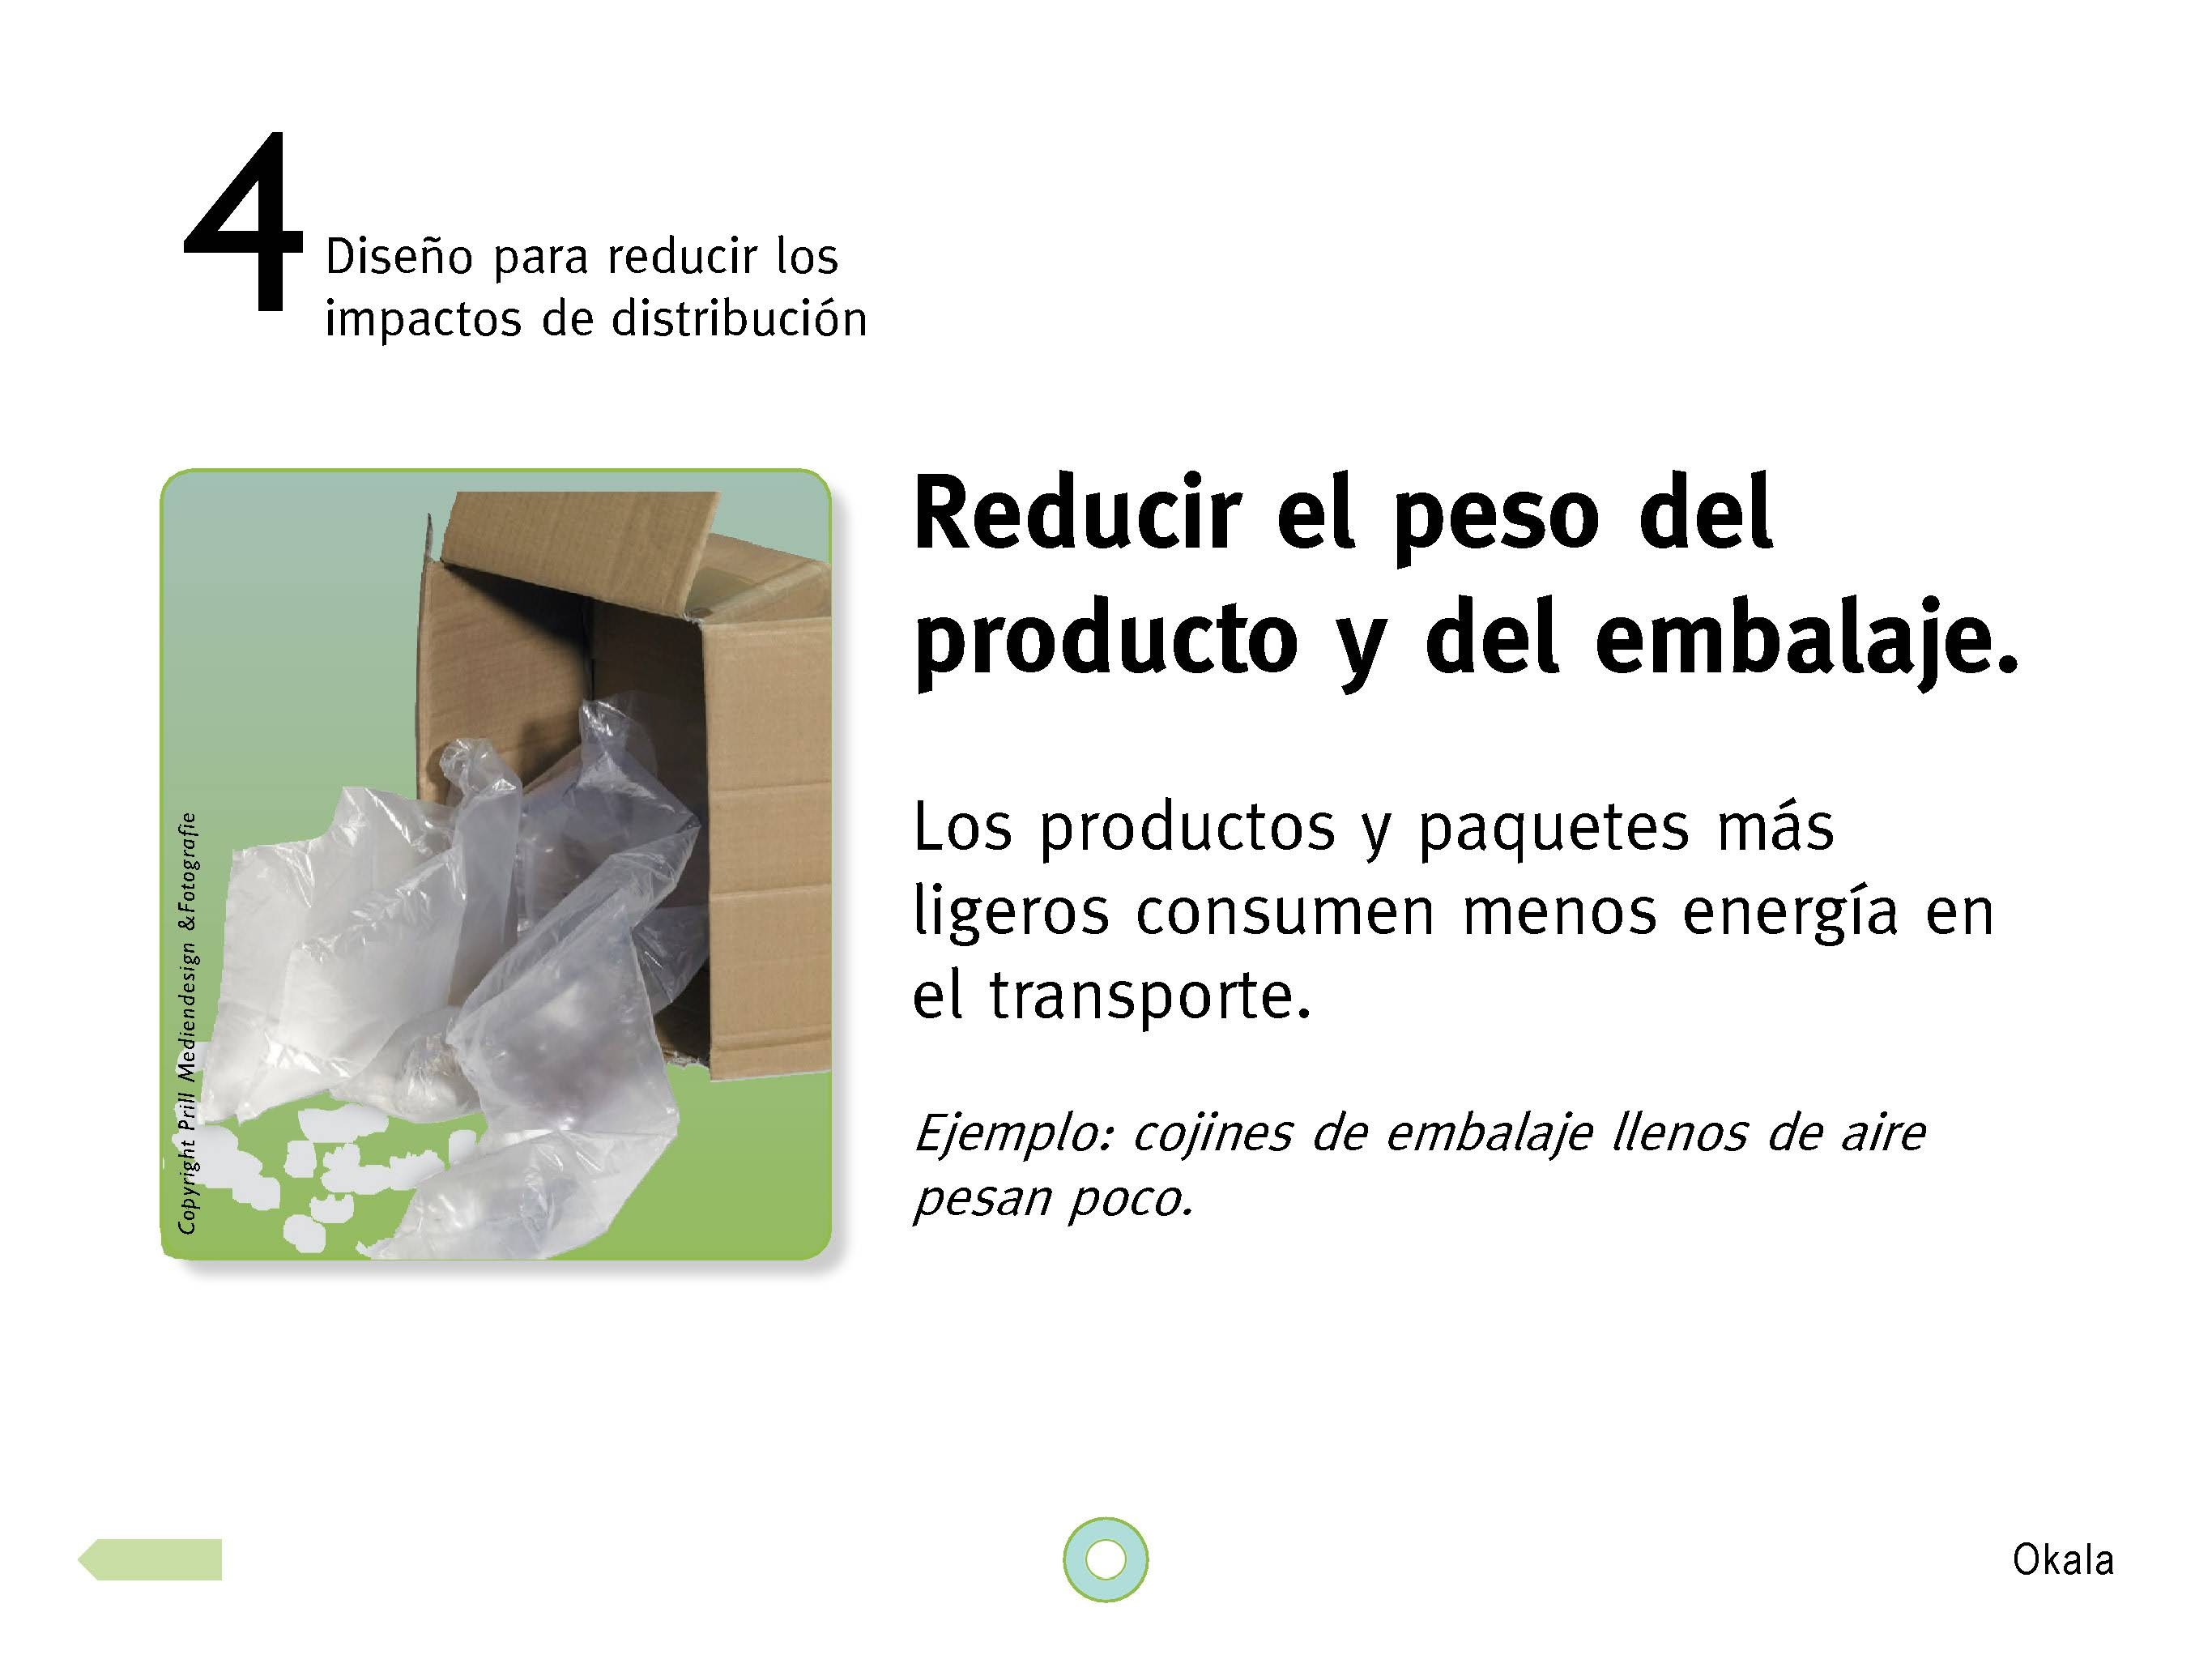 okala-ecodesign-strategy-guide-2012-spanish.new_page_22-1